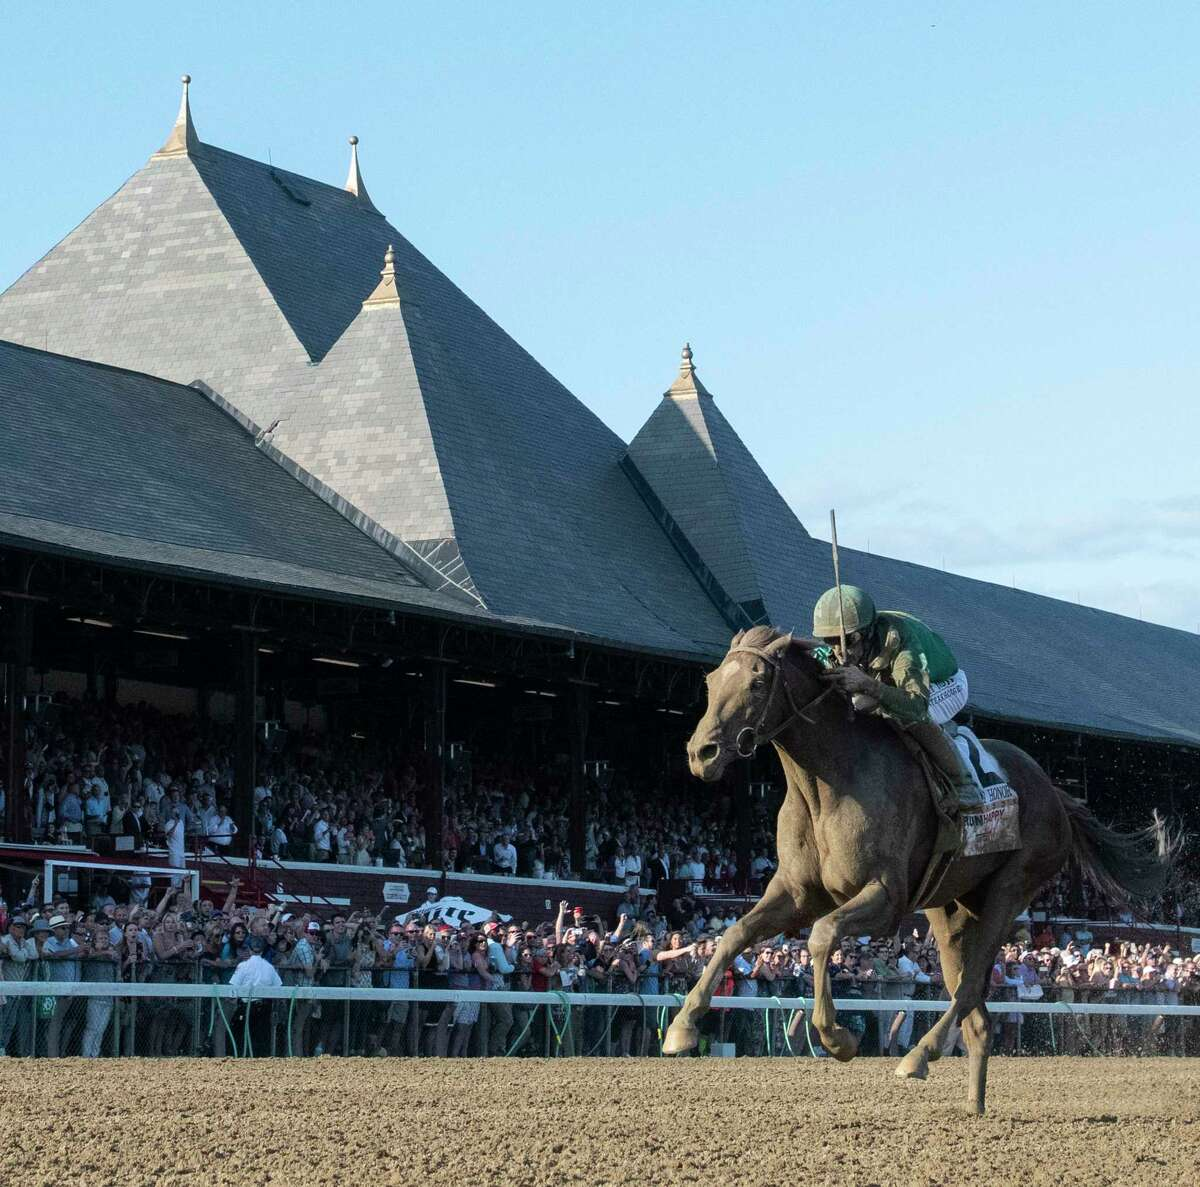 Code of Honor and jockey John Velazquez leads the way to the finish line and the win in the 150th running of the Travers Stakes at the Saratoga Race Course Saturday Aug. 24, 2019 in Saratoga Springs, N.Y. Photo special to the Times Union by Skip Dickstein